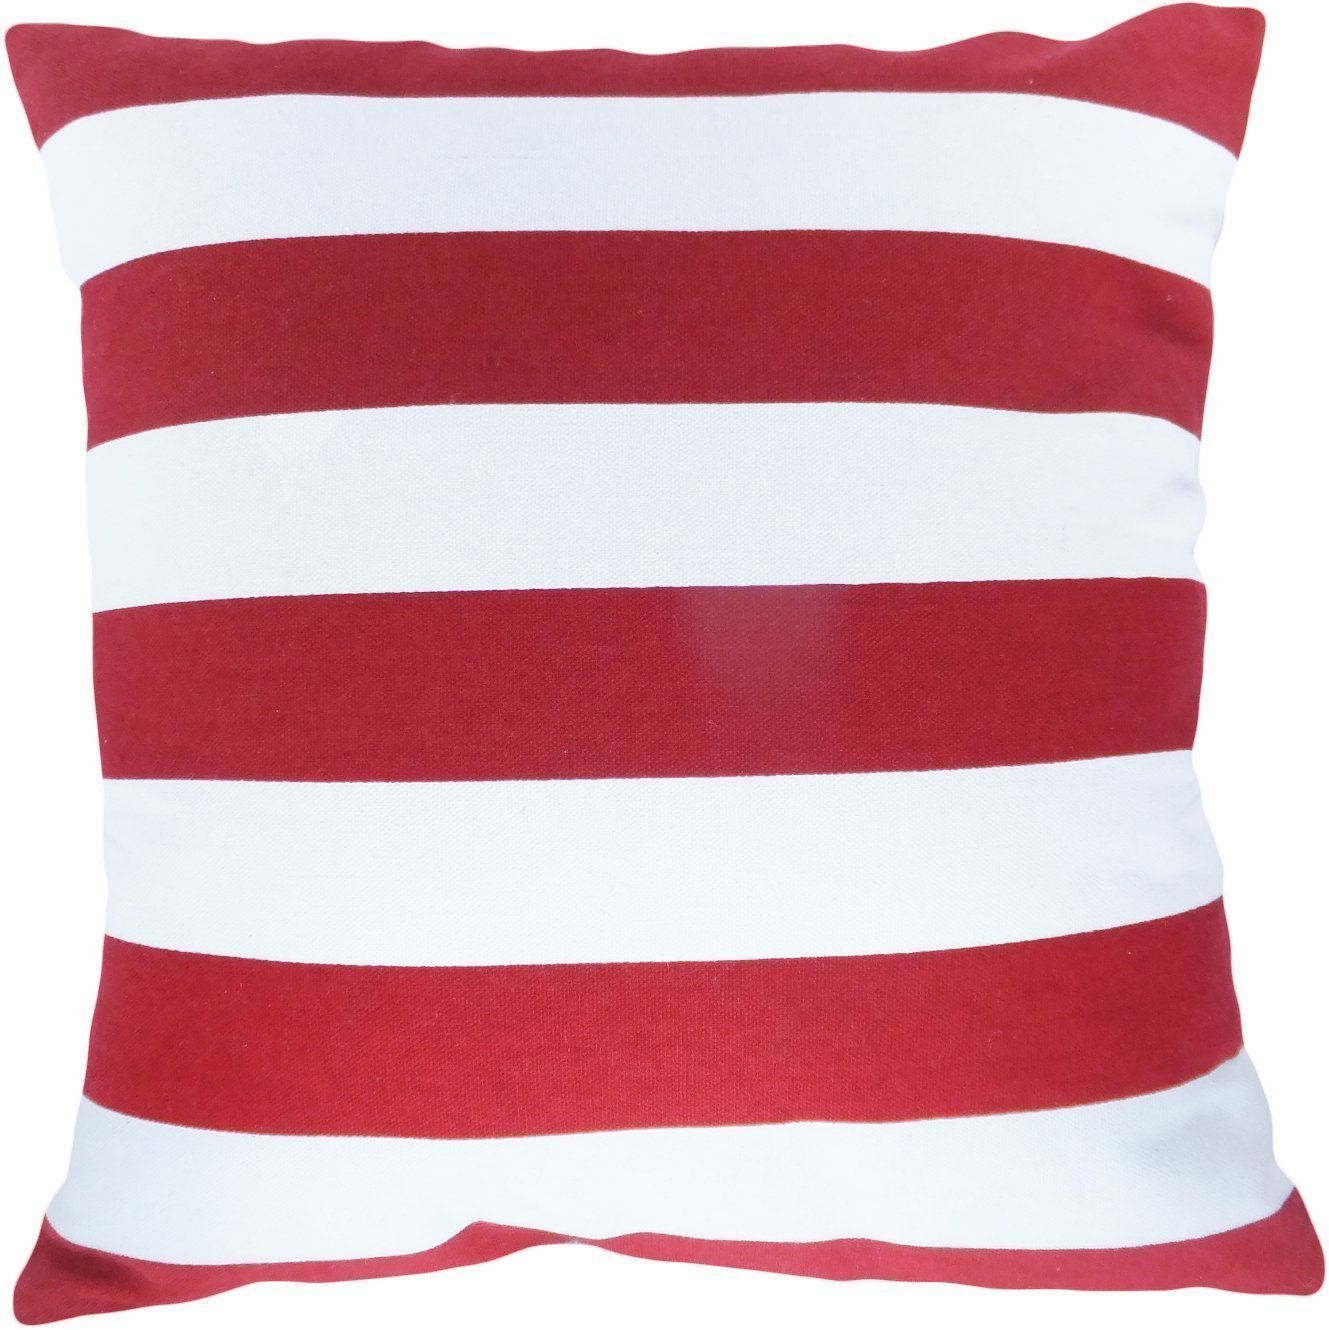 "Amazon.com: Decorative Printed Stripes Throw Pillow Cover 17"" Red ..."